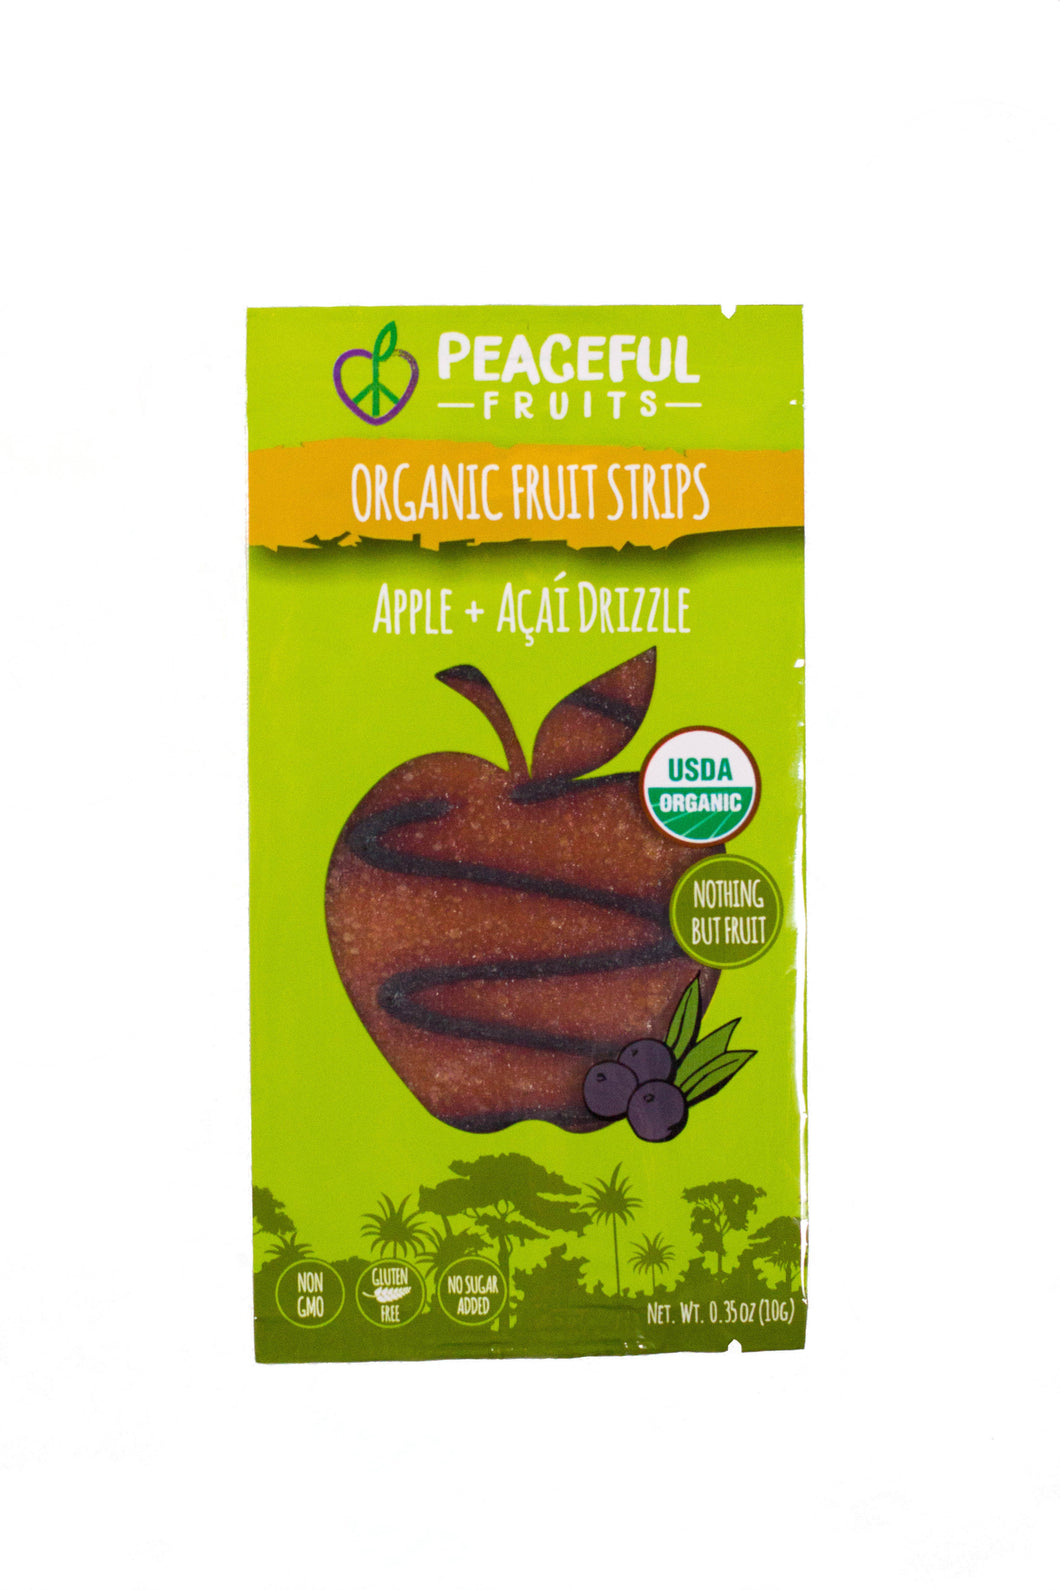 Apple + Acai Drizzle (12-pack)